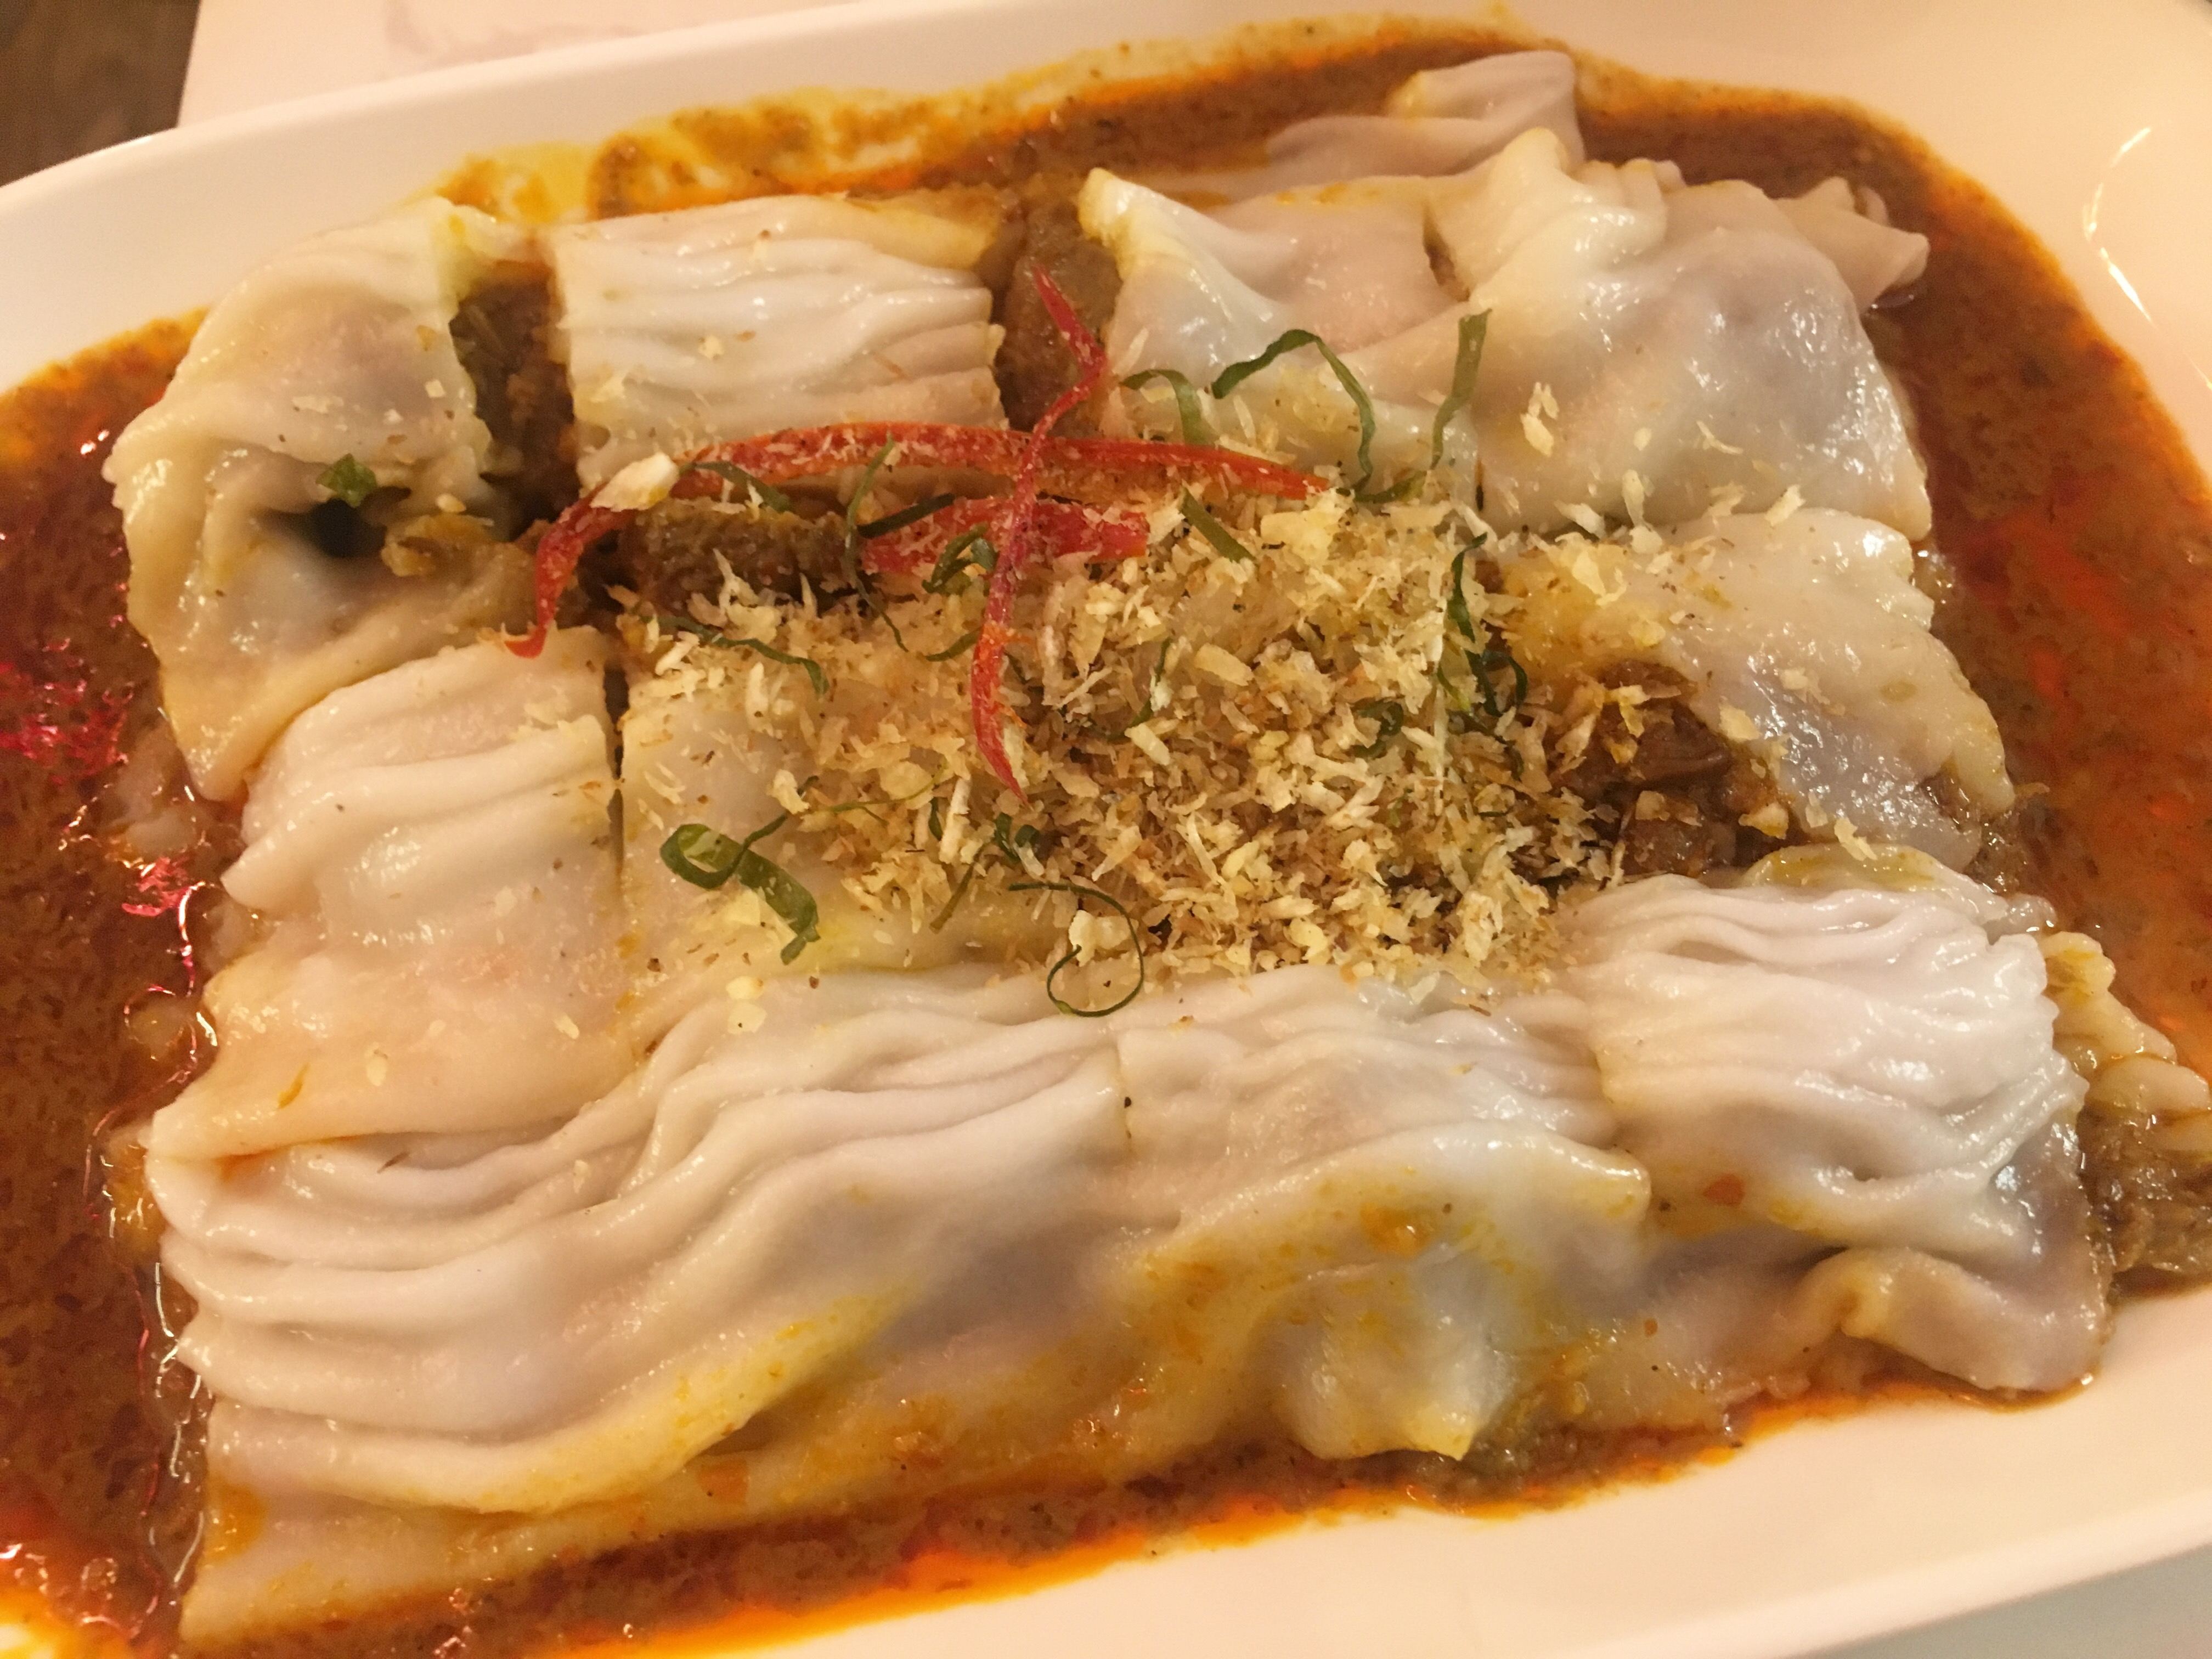 The Dim Sum Place - Vermicelli Roll with Beef Rendang